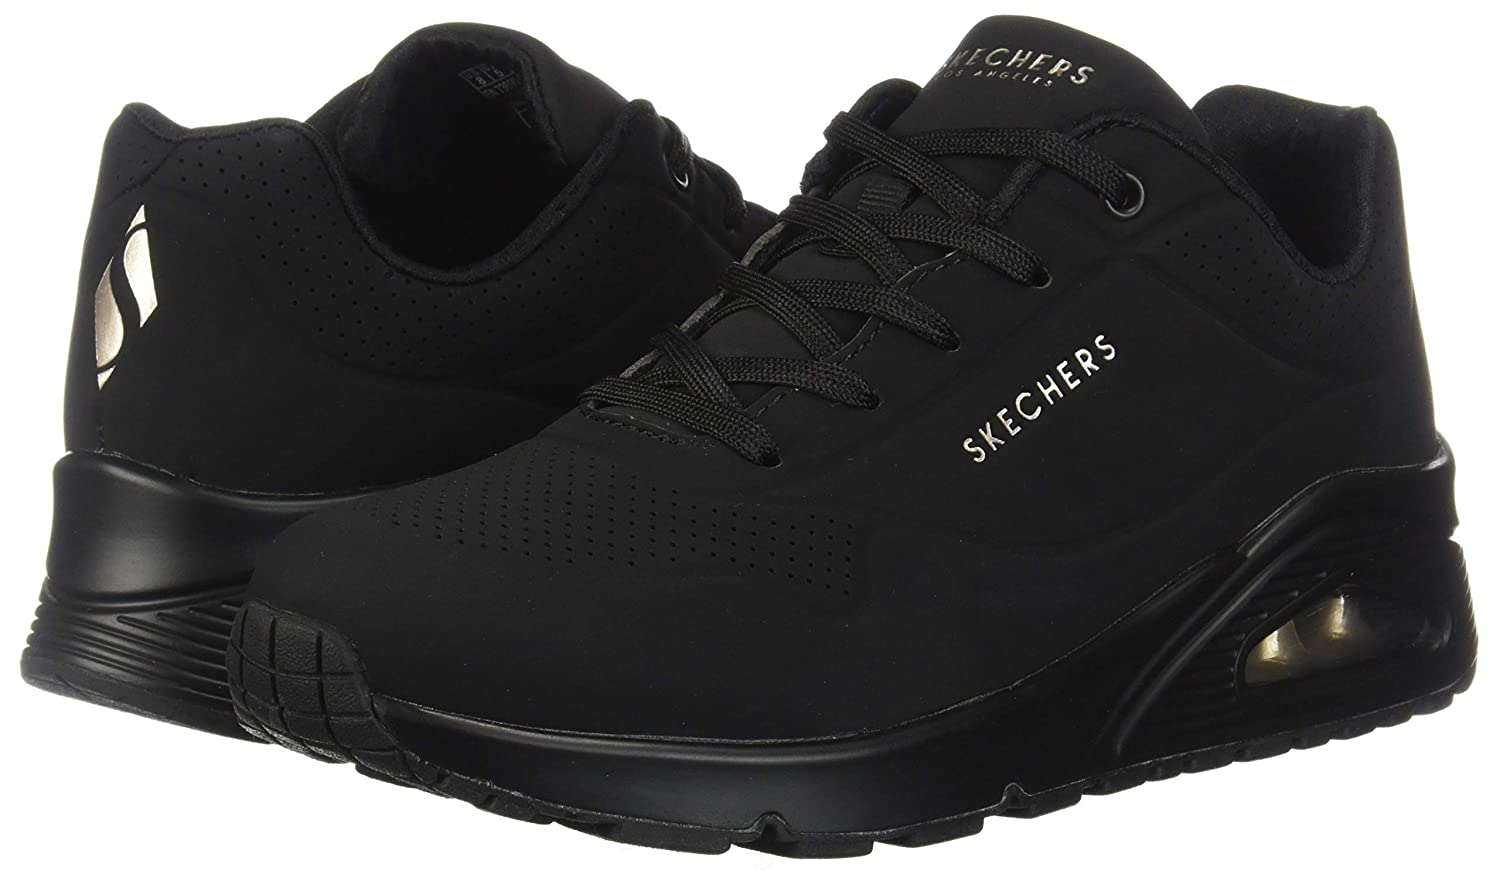 Skechers Street Uno Stand on Air Womens Sneakers: